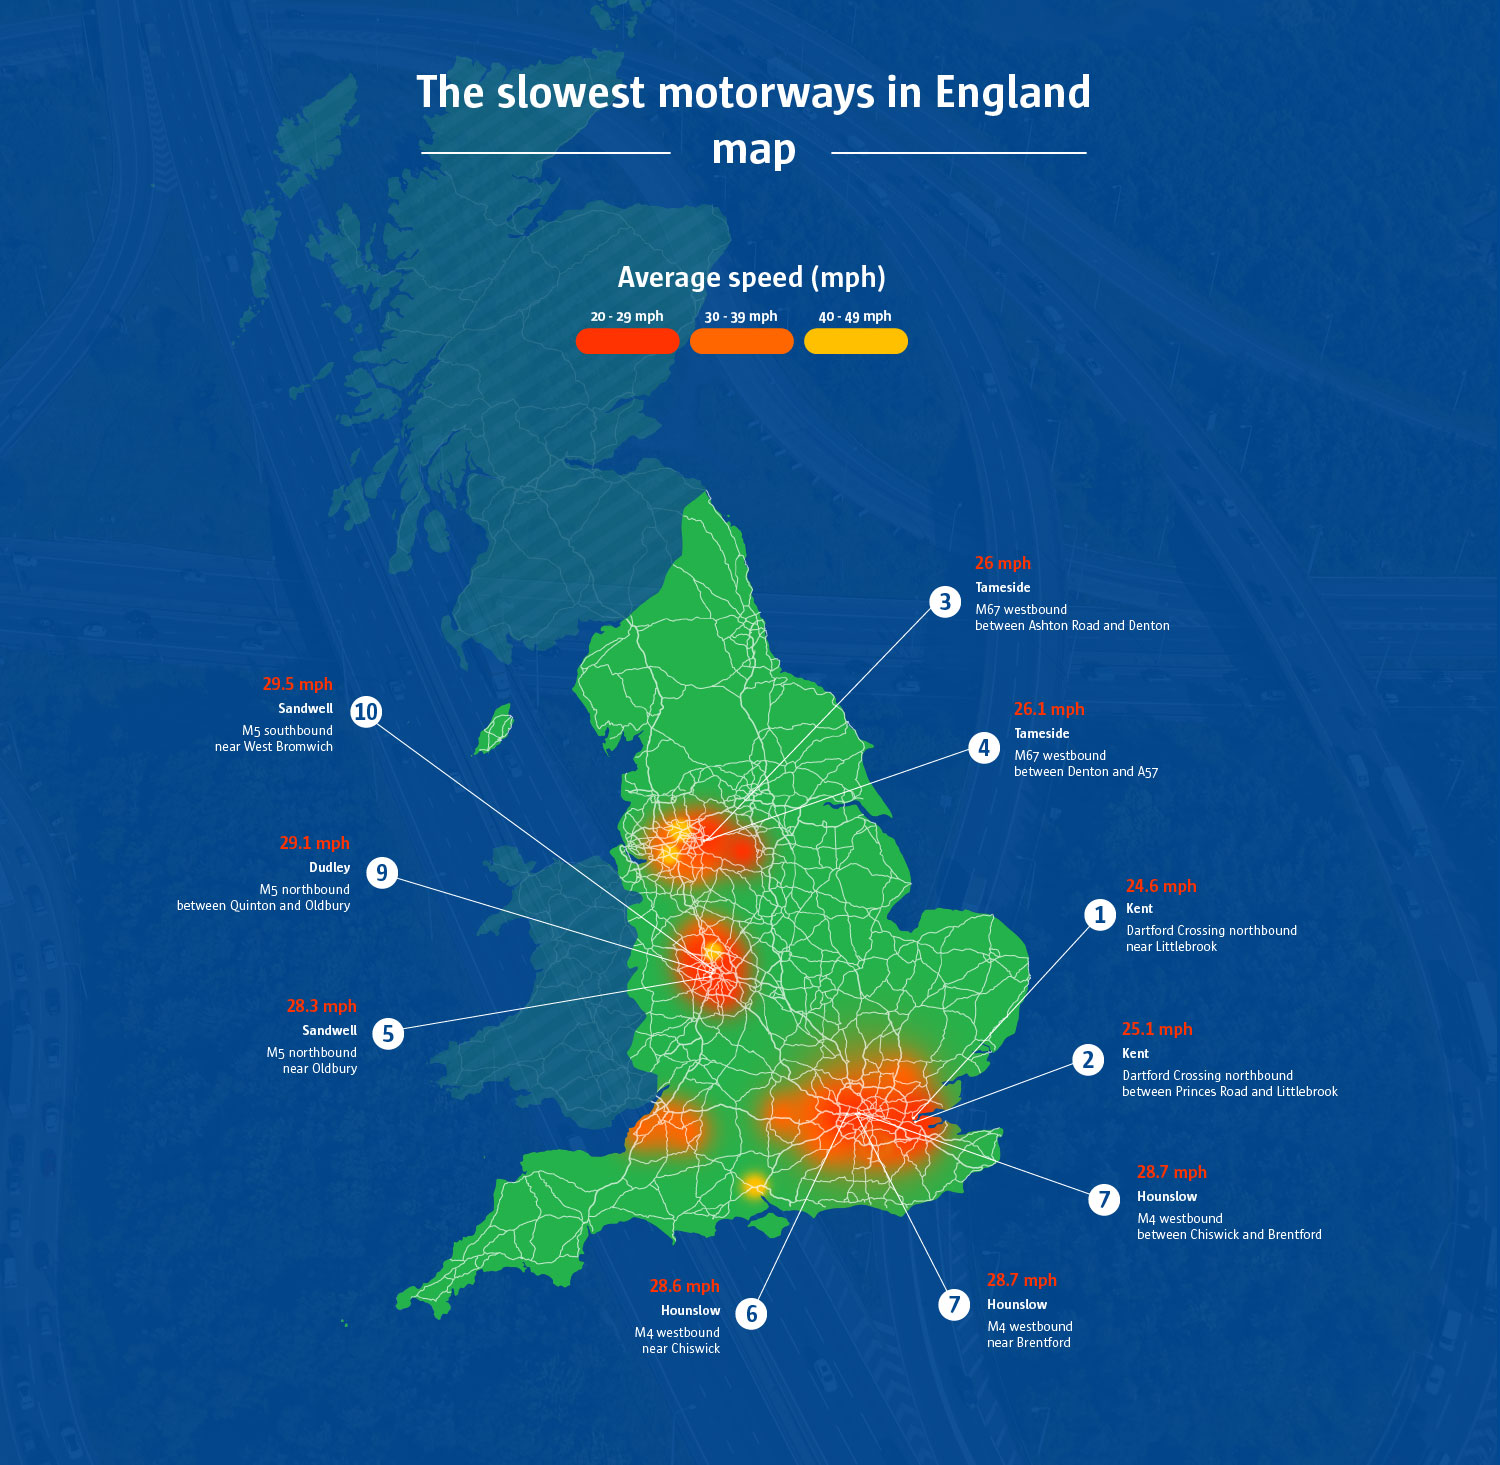 A map to show the slowest motorways in England.